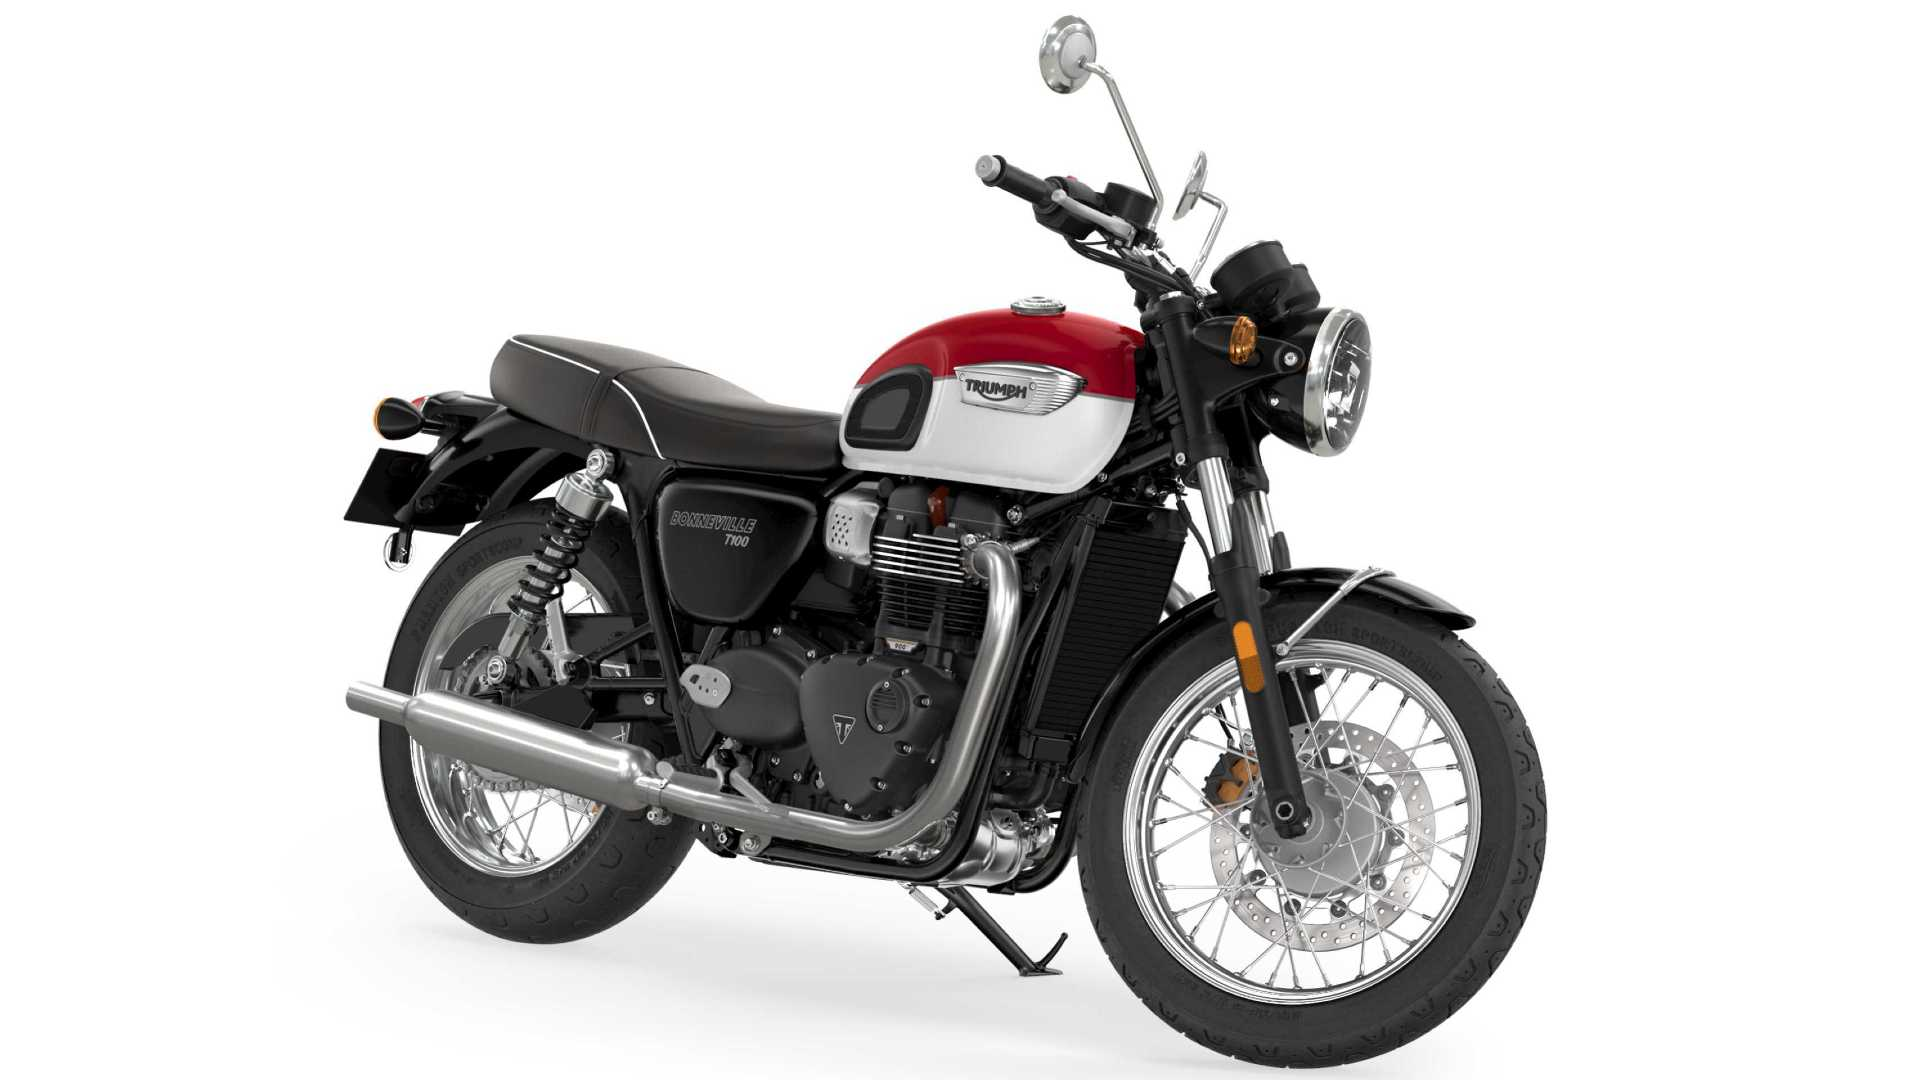 The 2021 Triumph Bonneville T100 benefits from a 10 hp rise in power output. Image: Triumph Motorcycles